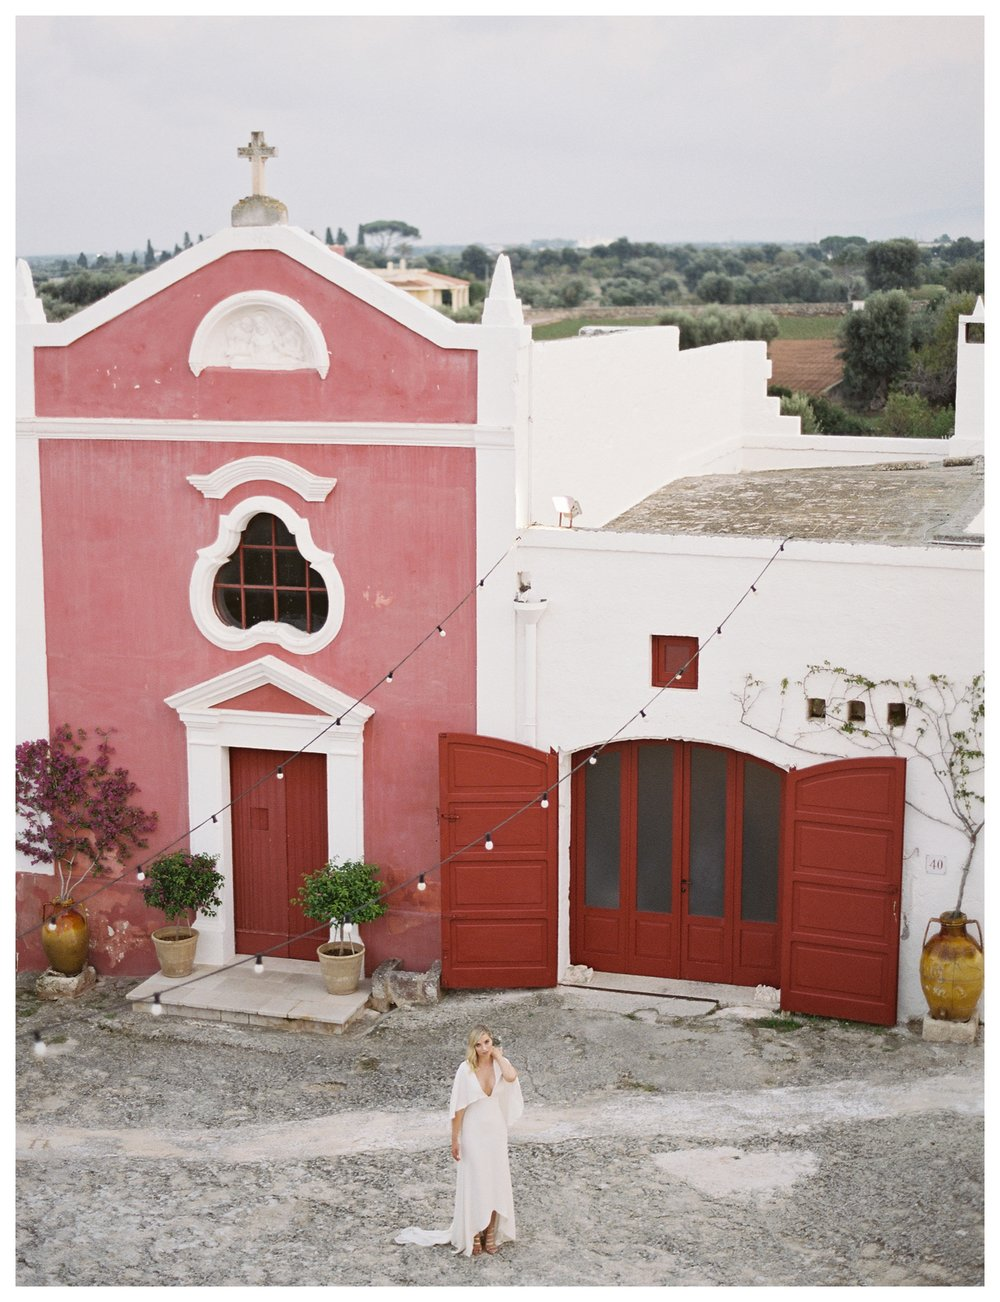 Masseria-torre-coccaro-wedding-photographer-italy-williamsburgphotostudios-021.jpg